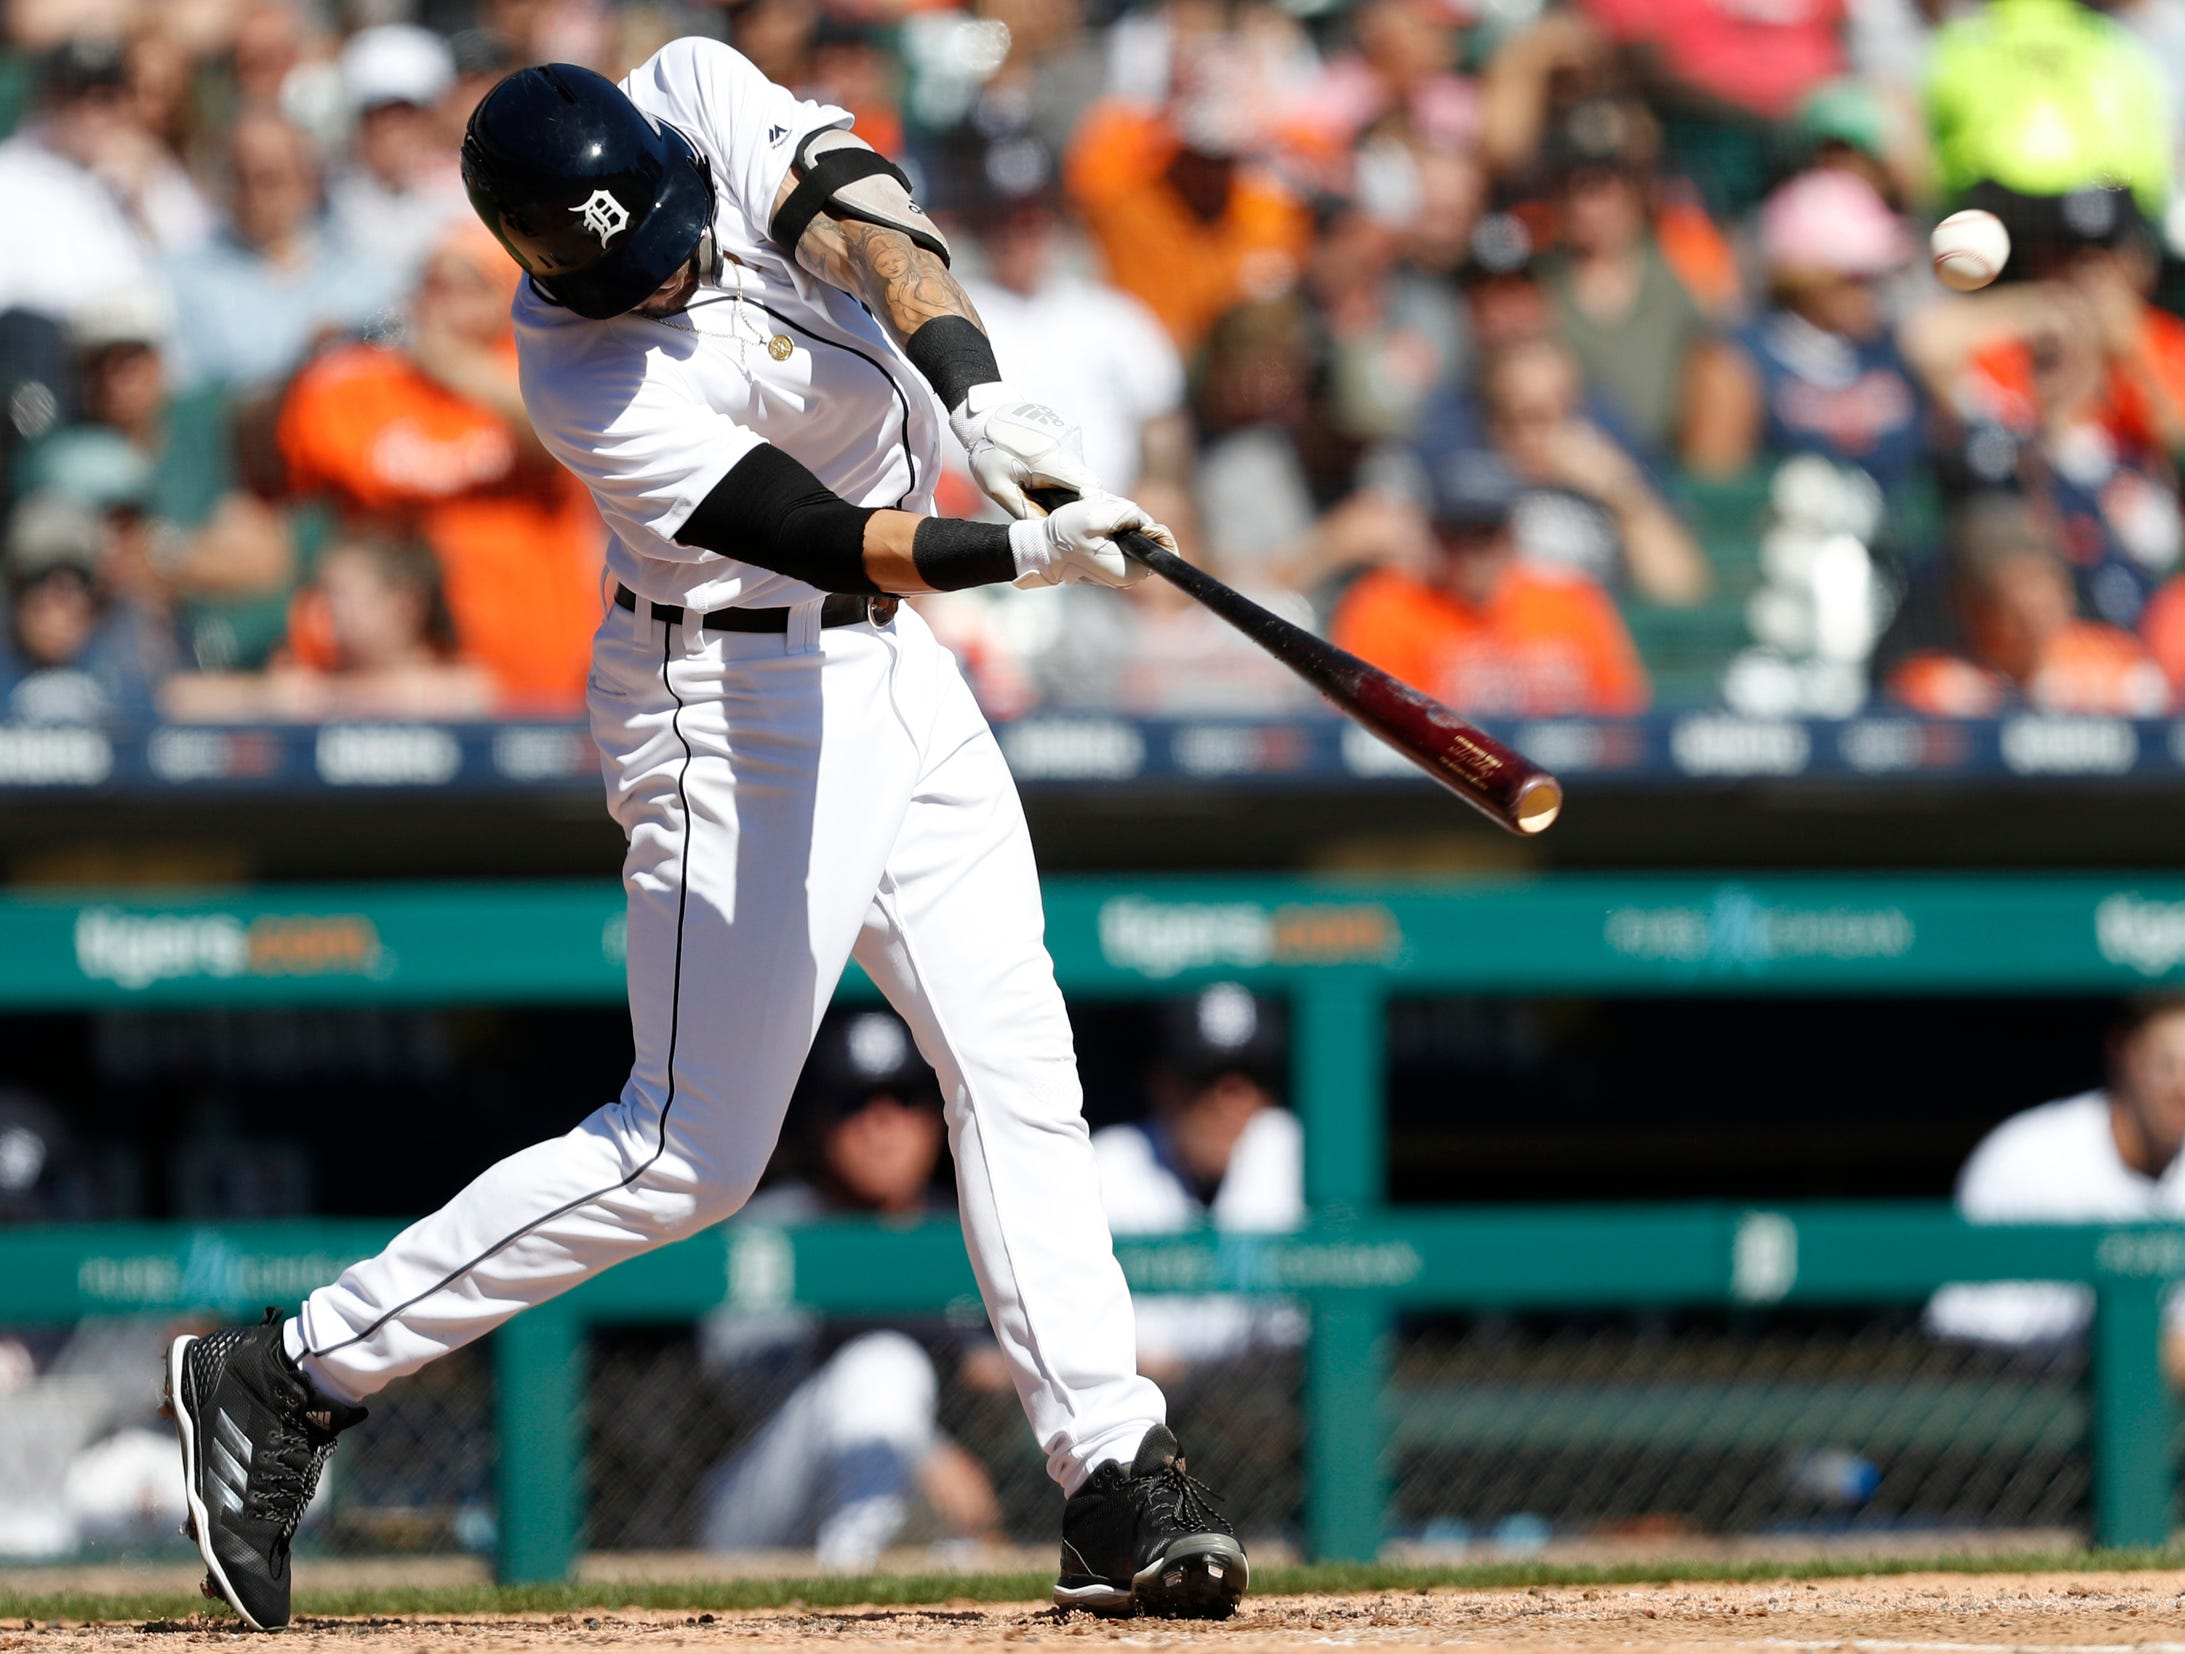 Tigers designated hitter Nicholas Castellanos hits a sacrifice fly RBI during the fourth inning on Sunday, Sept. 23, 2018, at Comerica Park.